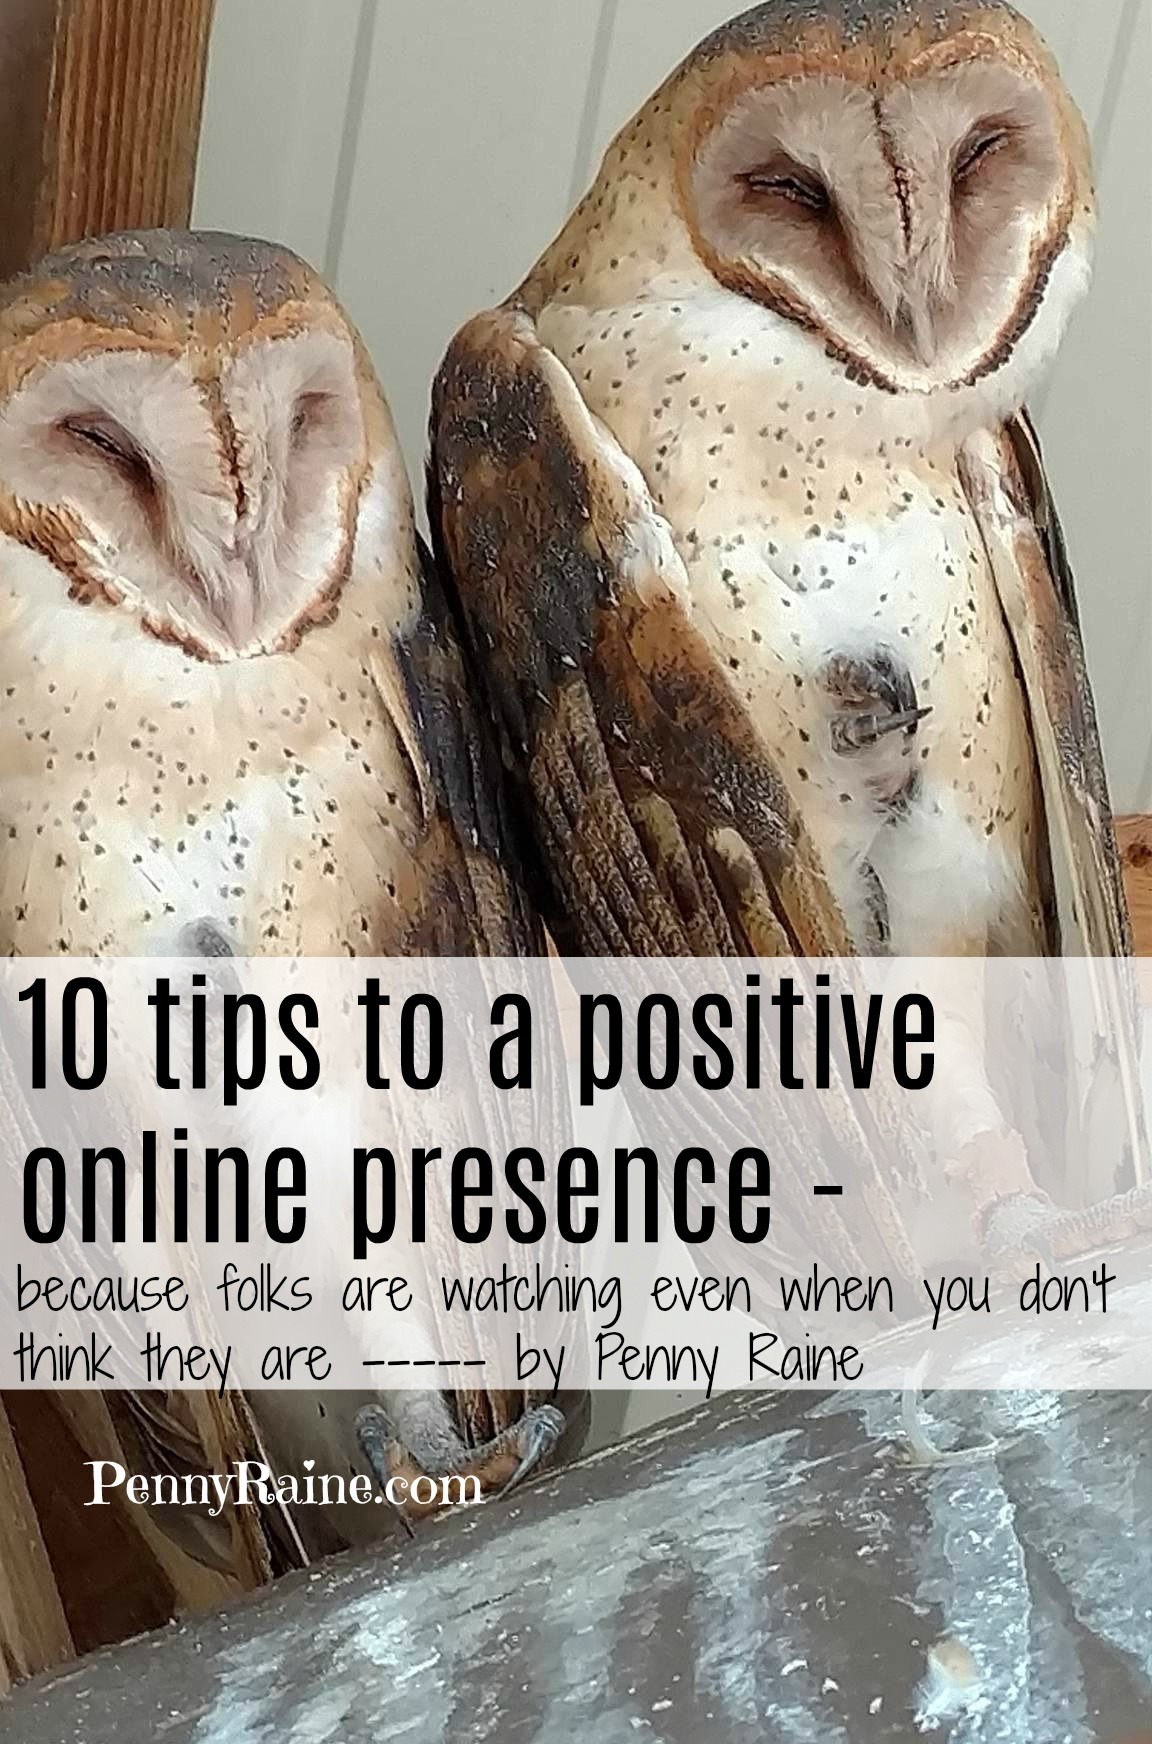 10 tips to a positive online presence